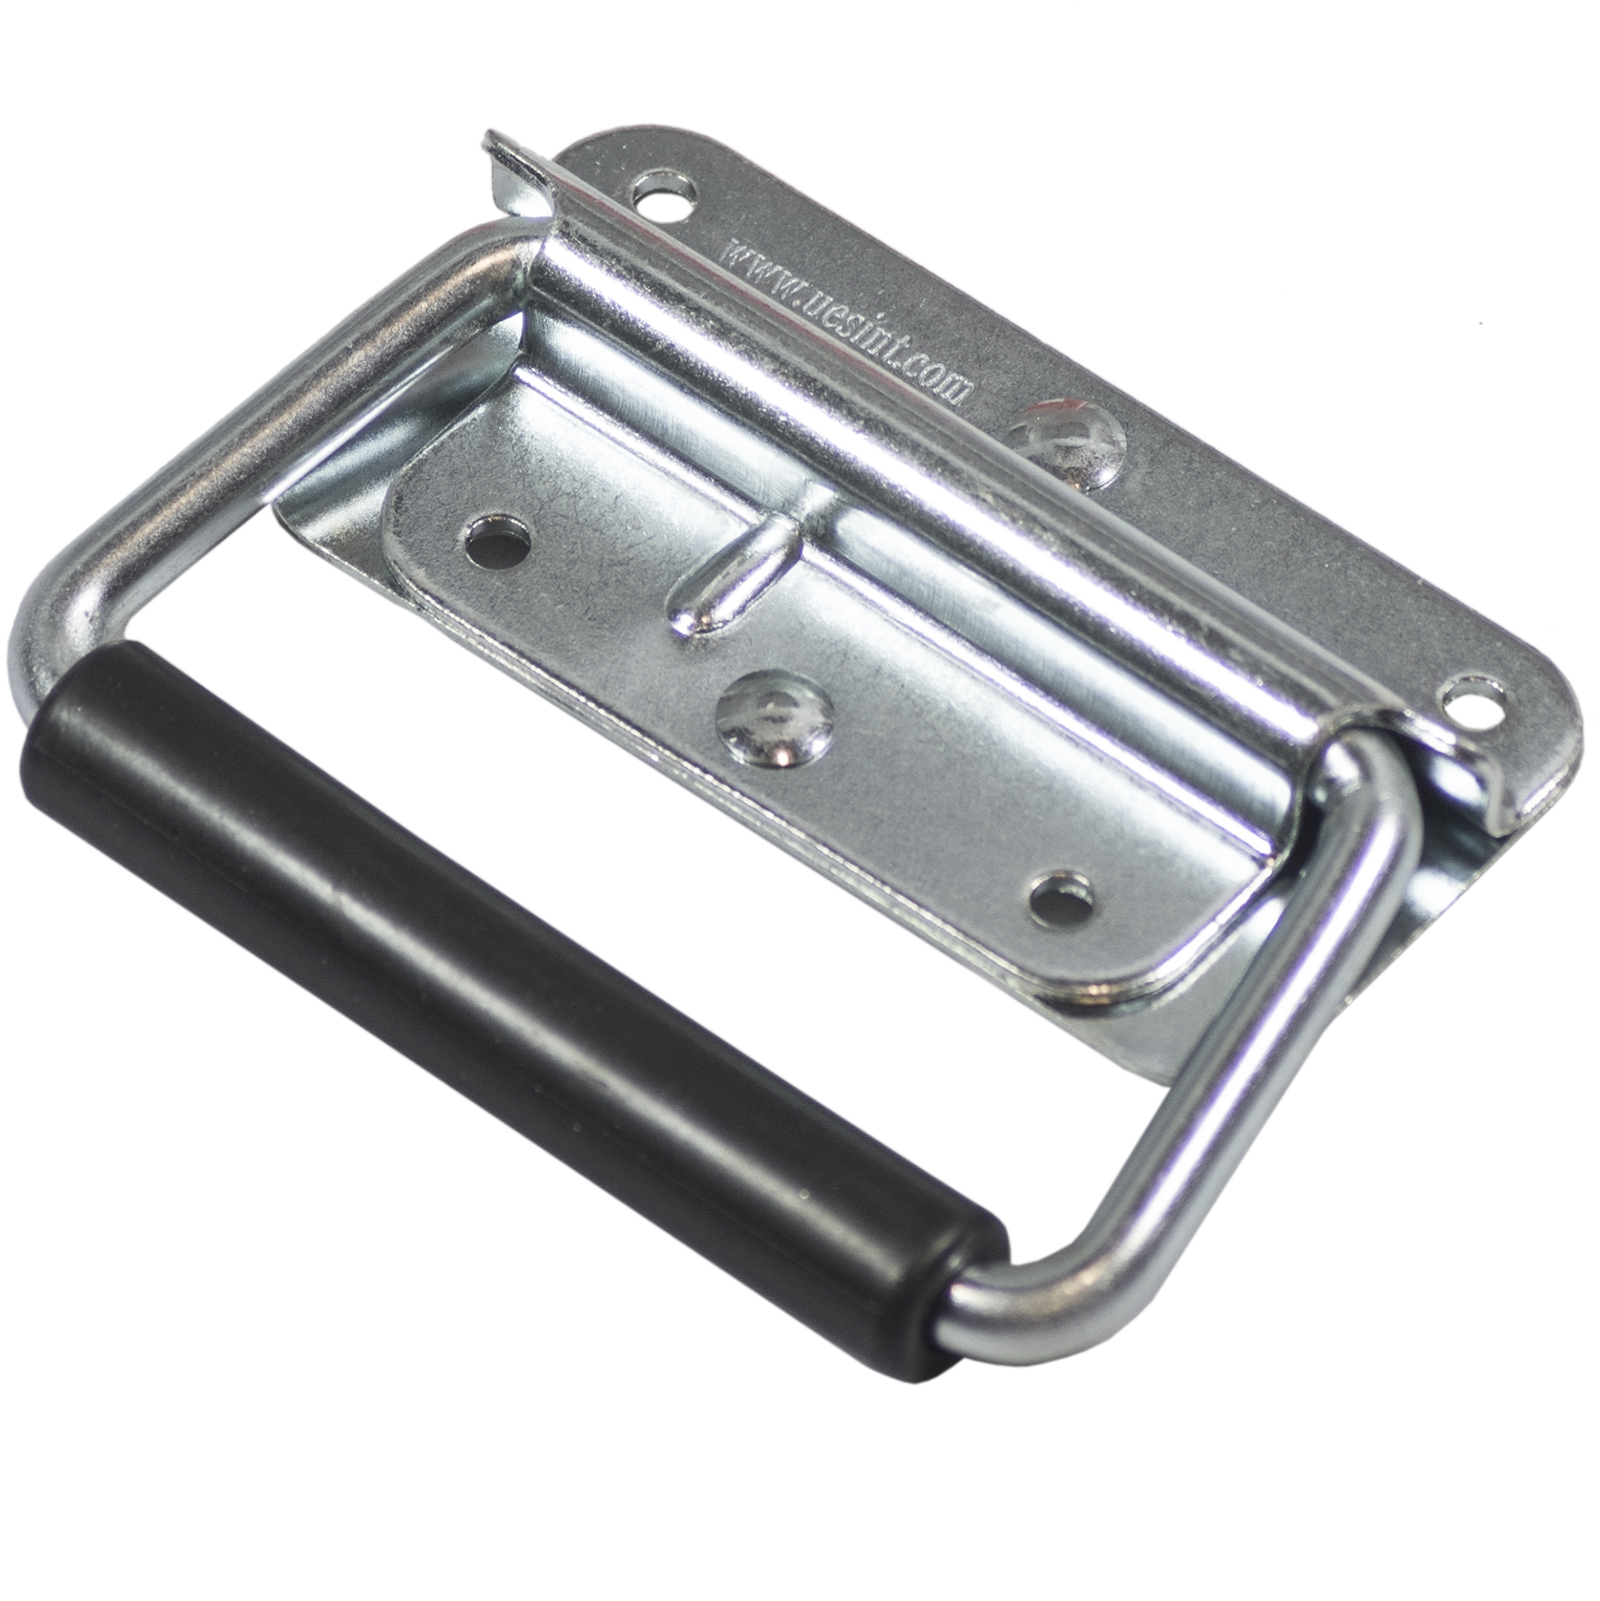 Zinc Plated Steel Spring Loaded Chest Handle